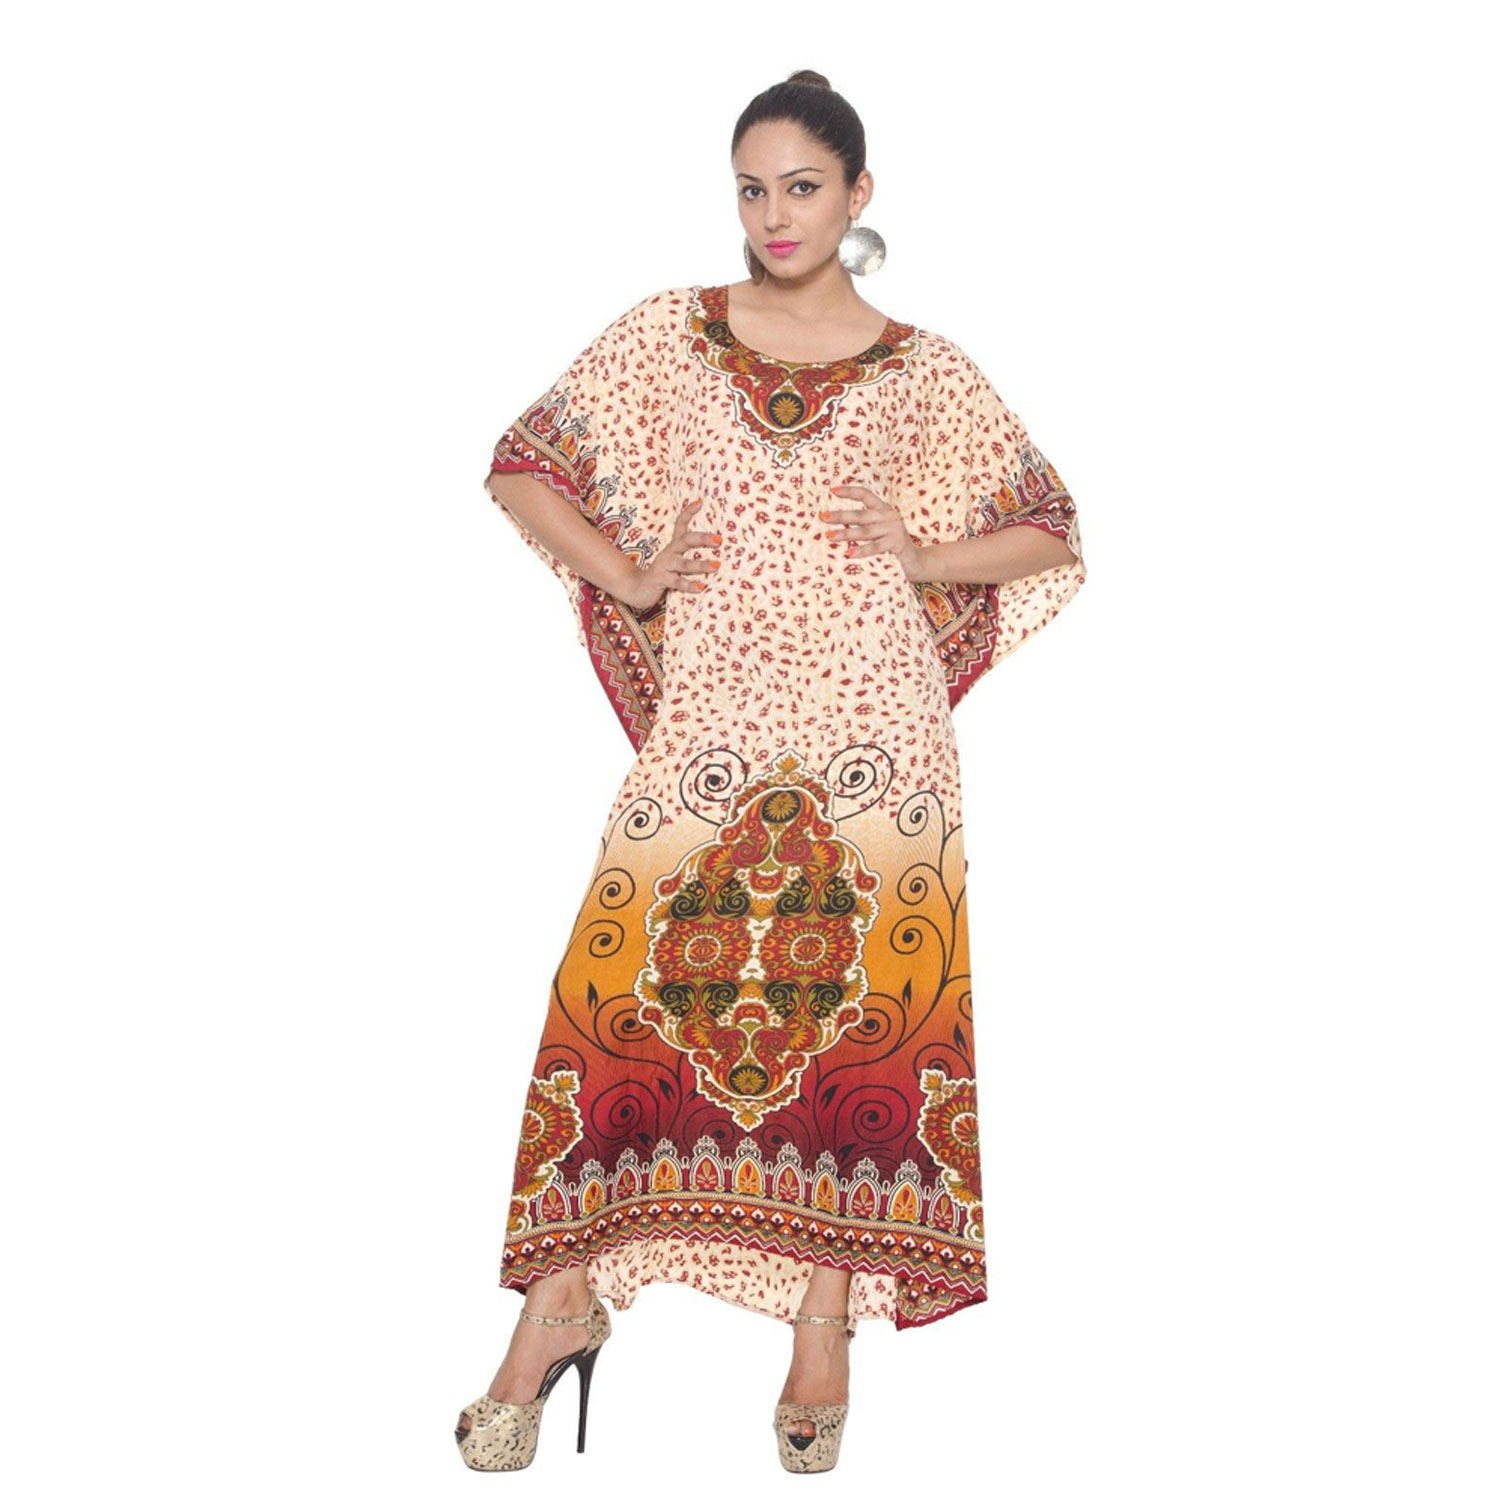 Alphabet Deal | Cream Long Caftan Dress for Women Kaftan Plu| Price : $29.99